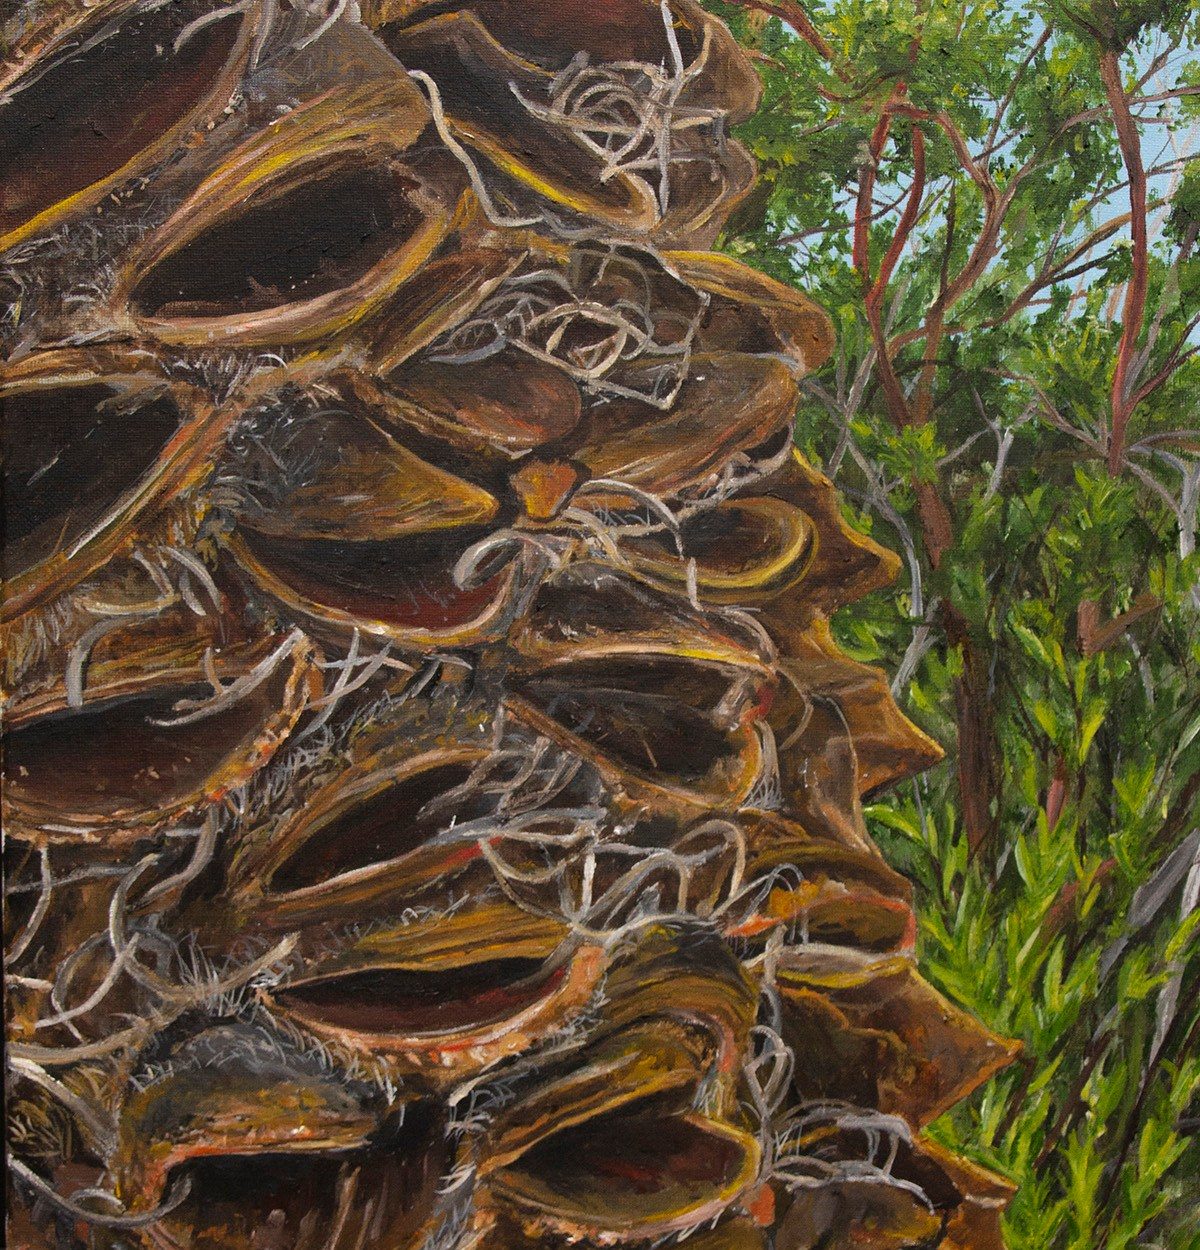 Banksia in the forest